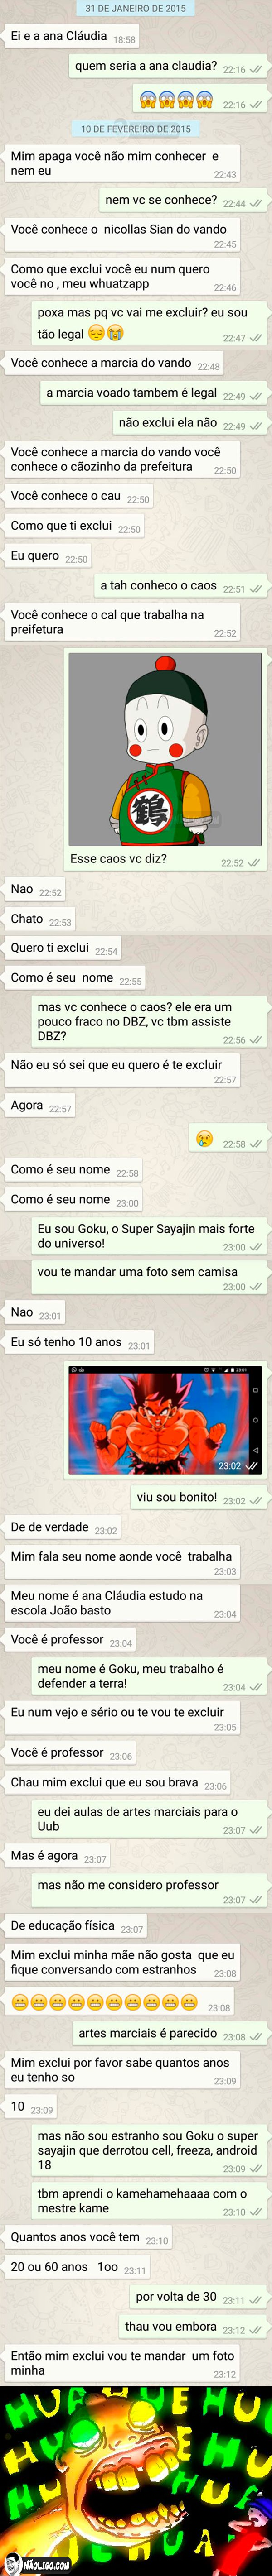 Conversa estranha no WhatsApp